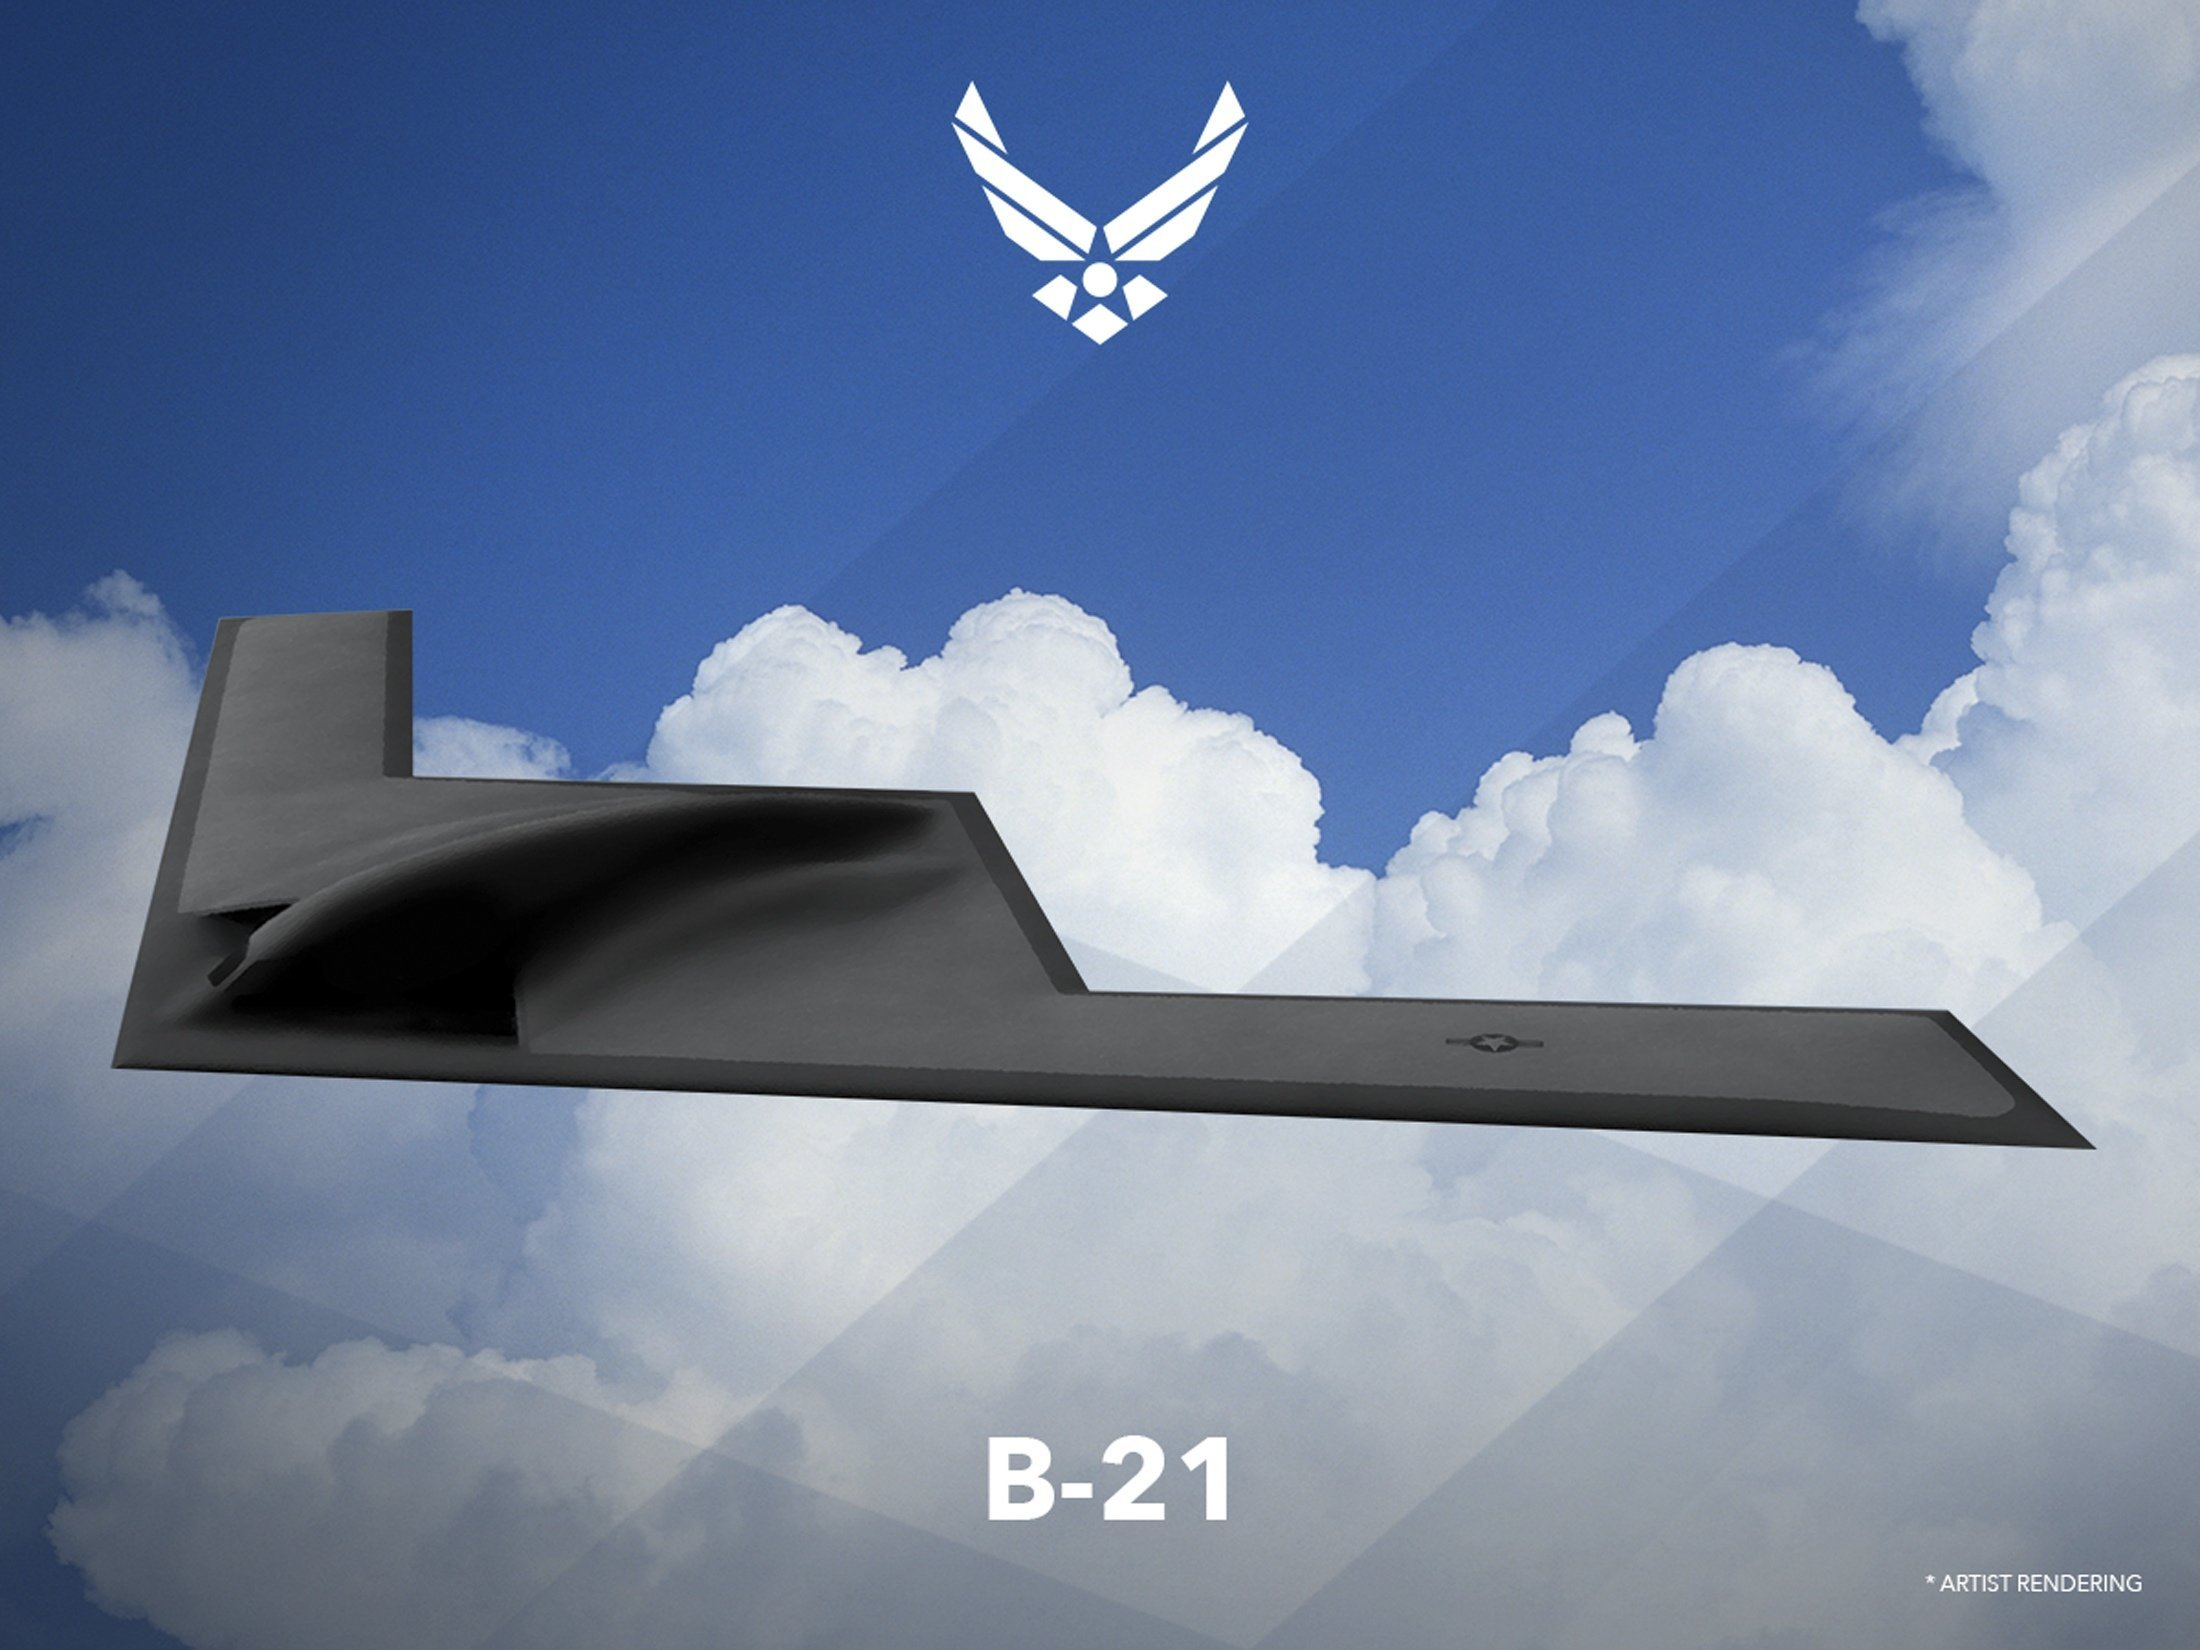 An artist rendering shows the first image of a new Northrop Grumman Corp long-range bomber B21 in this image released on February 26, 2016